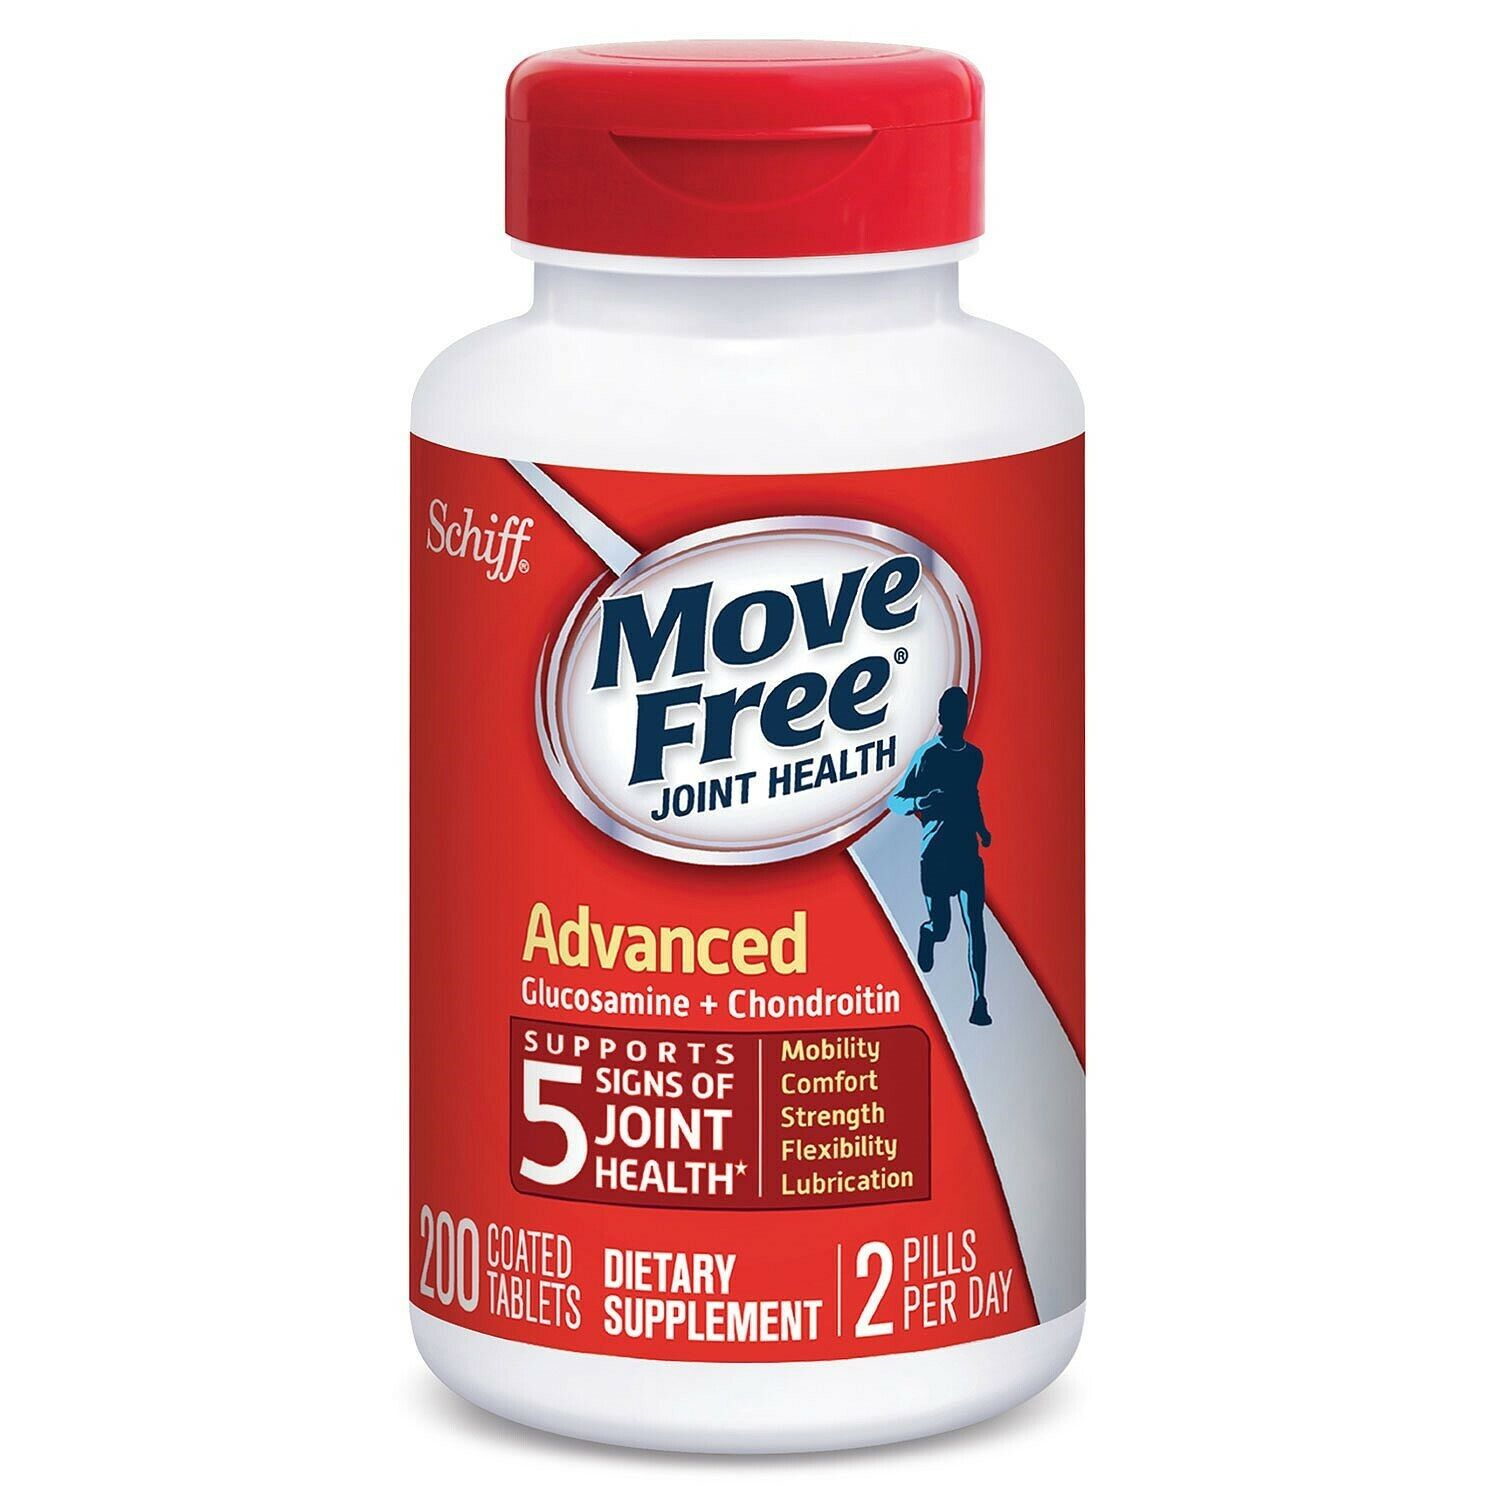 MOVE FREE JOINT HEALTH ADVANCED Glucosamine Chondroitin 200